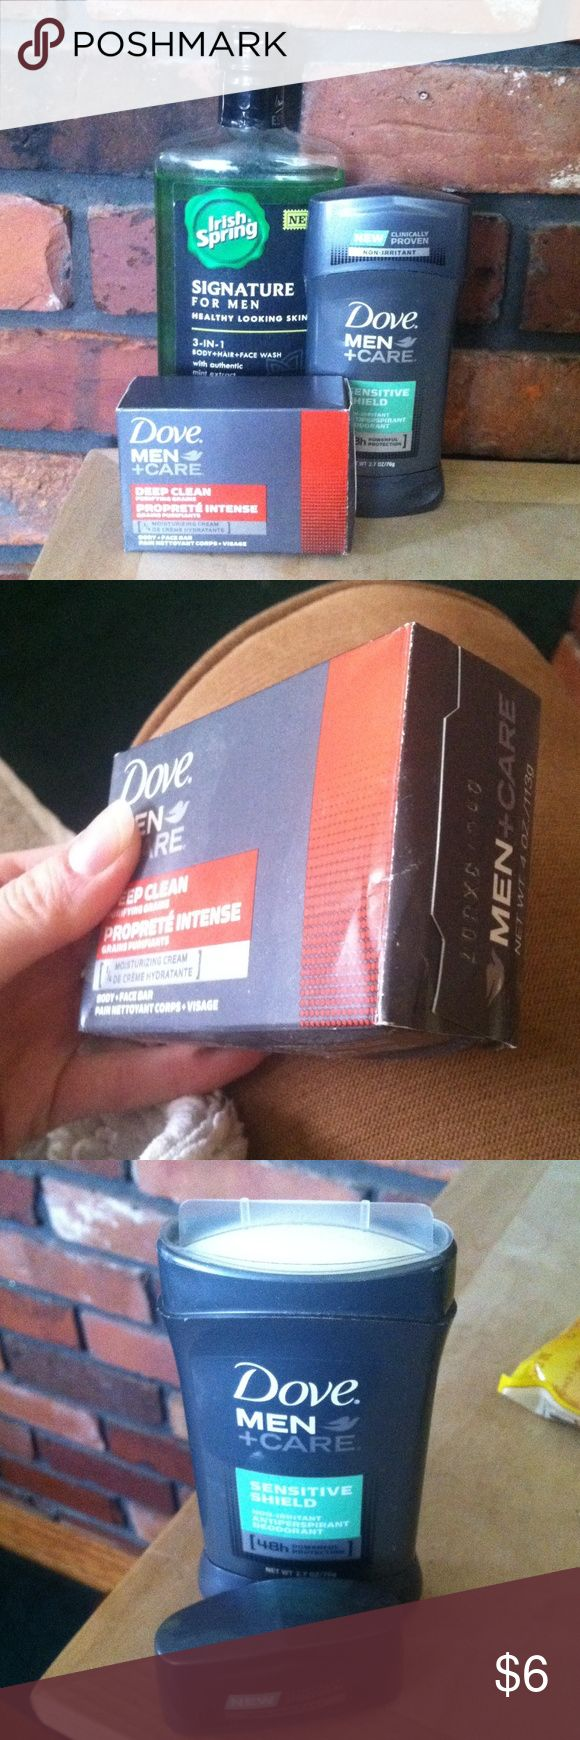 Men's care bundle Dove men +care sensitive deodorant/antiperspirant, brand new. Dove men +care body & face bar, brand new but the box is a bit crinkled. Irish springs body+hair+face wash, my husband tried it but didn't like it so there is a bit missing. Other